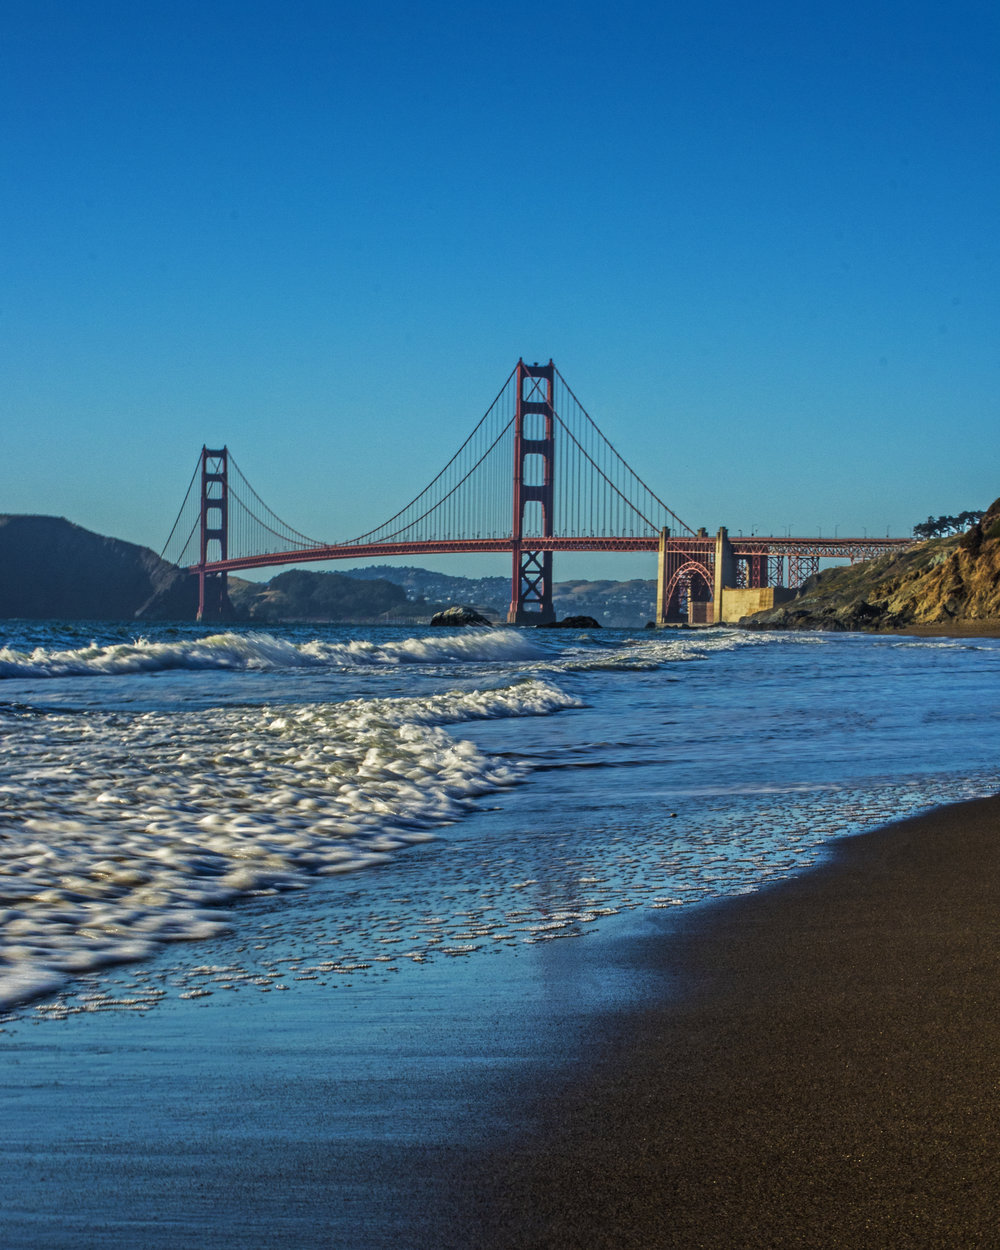 One of the first photos I took.  This was from Baker Beach on the Pacific side of the bridge.